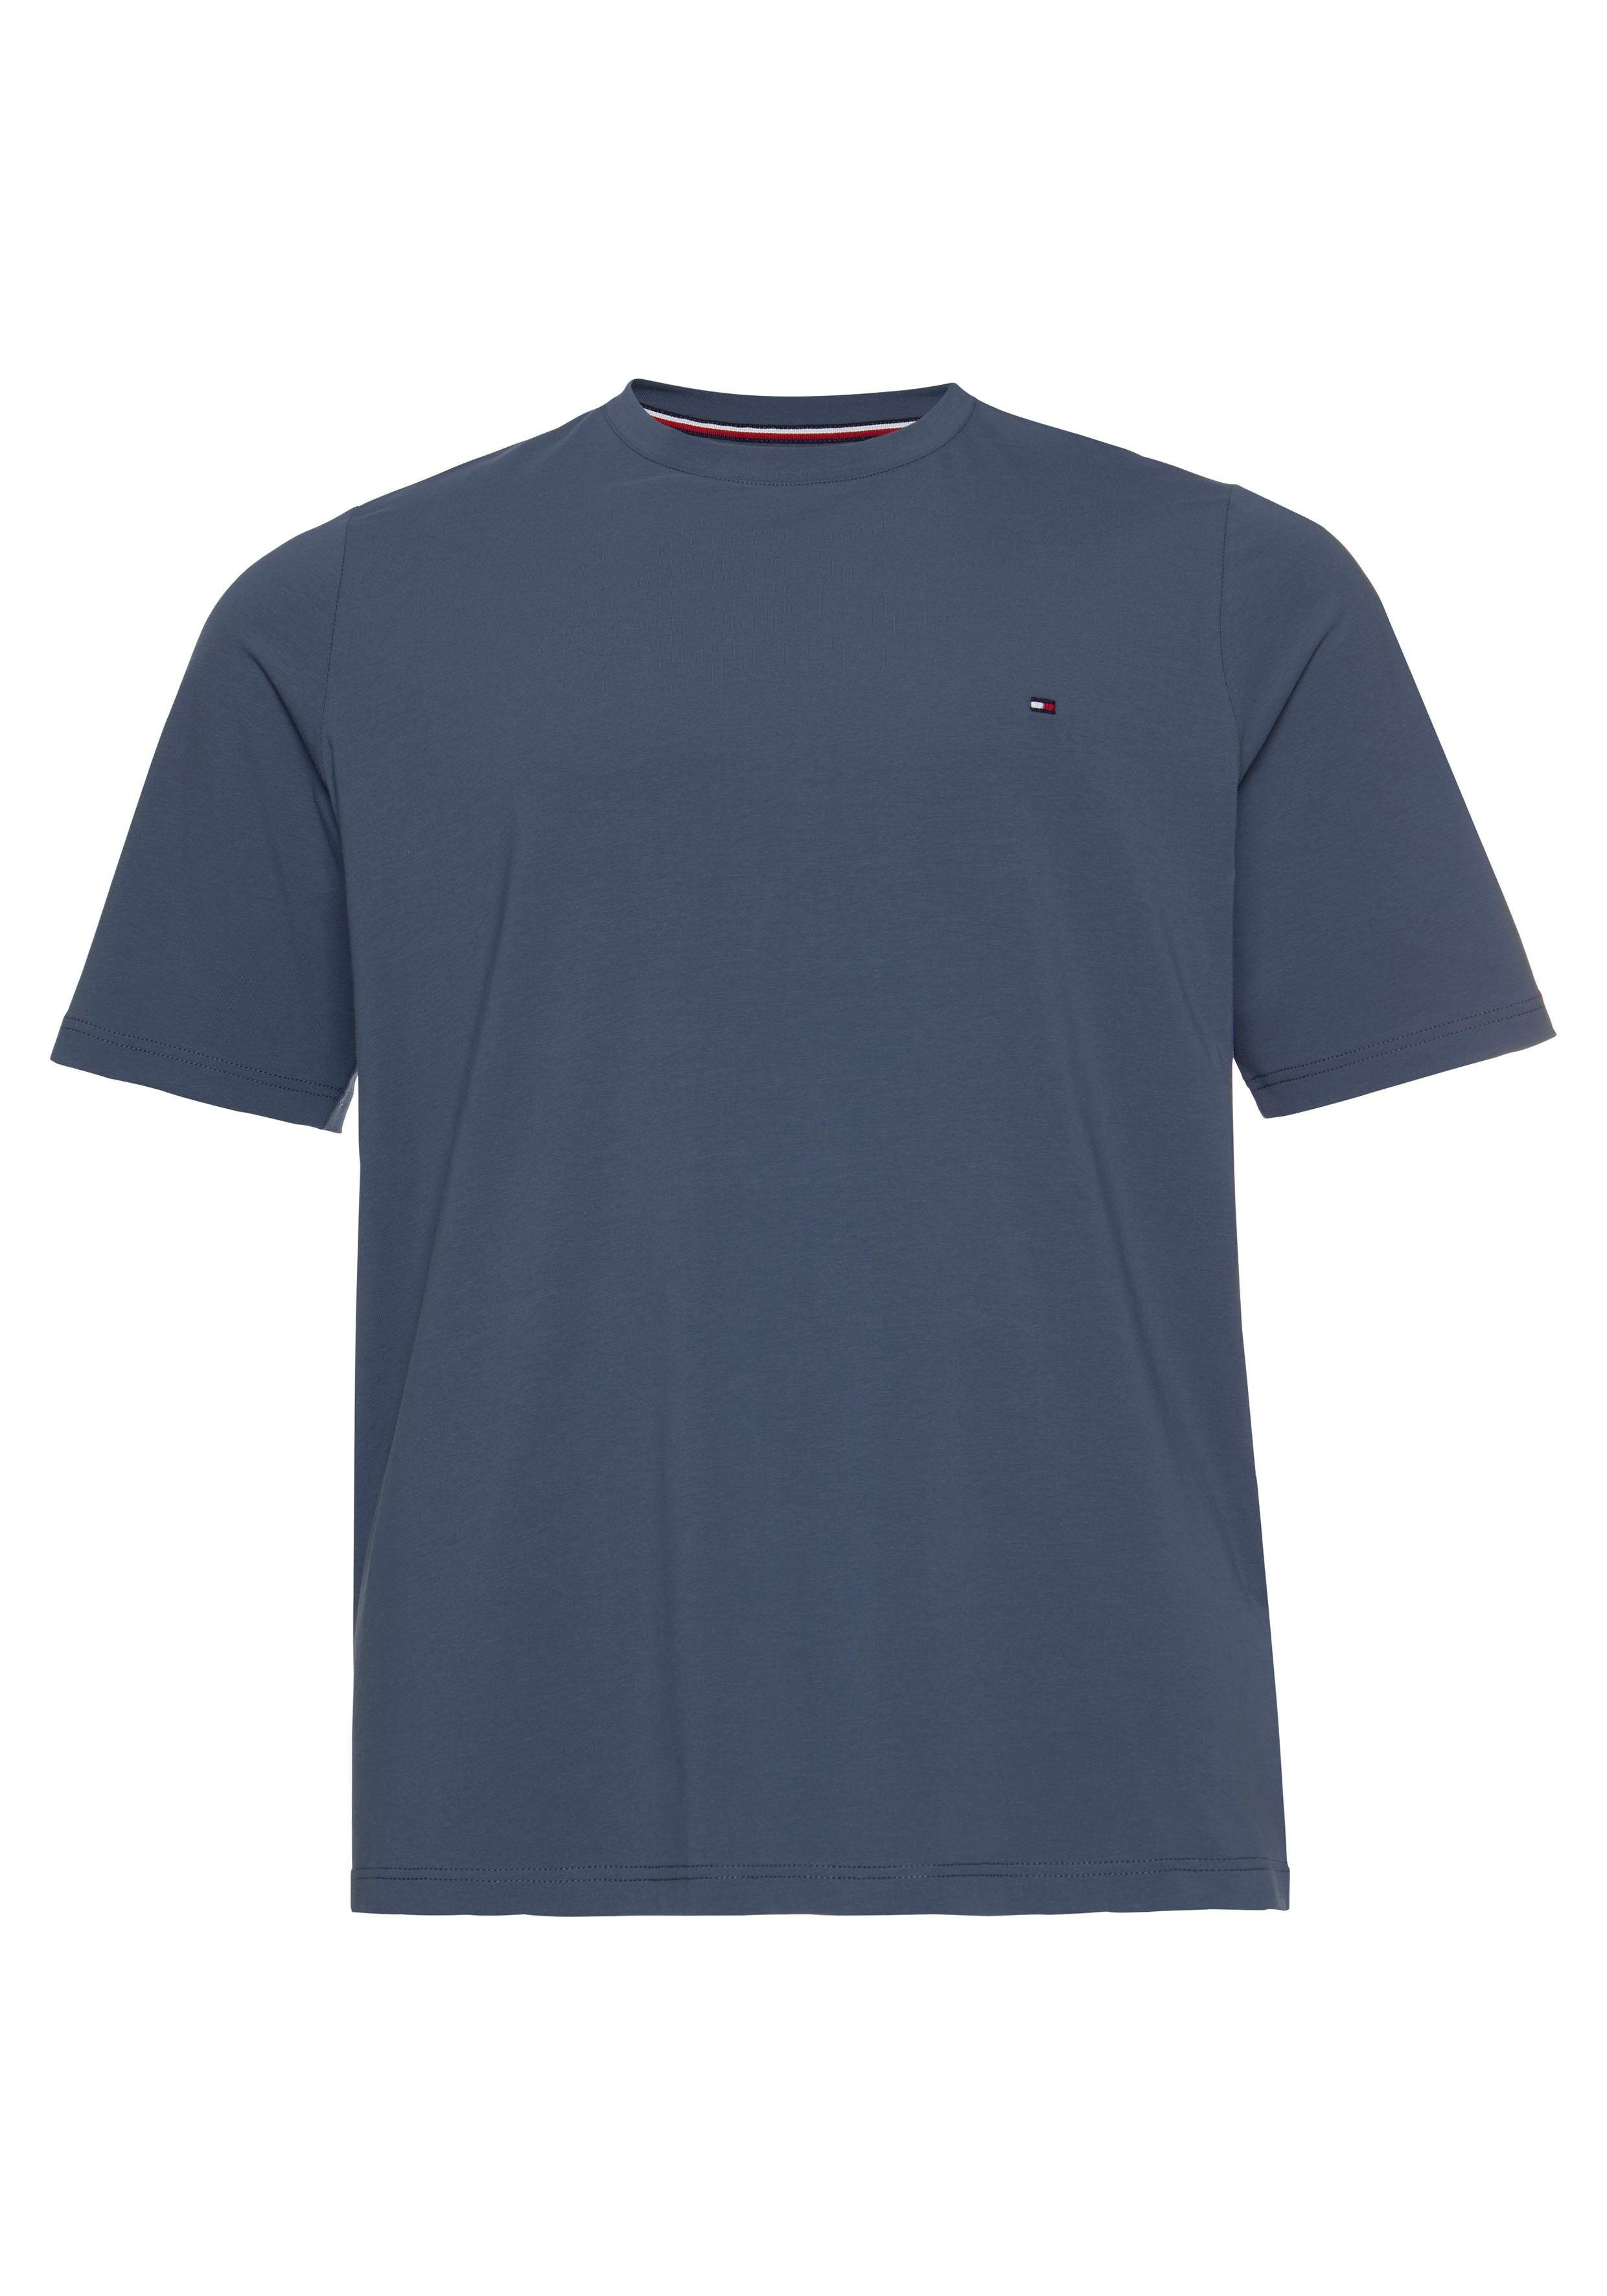 TOMMY HILFIGER T Shirt »Big & Tall Stretch Tee« | OTTO